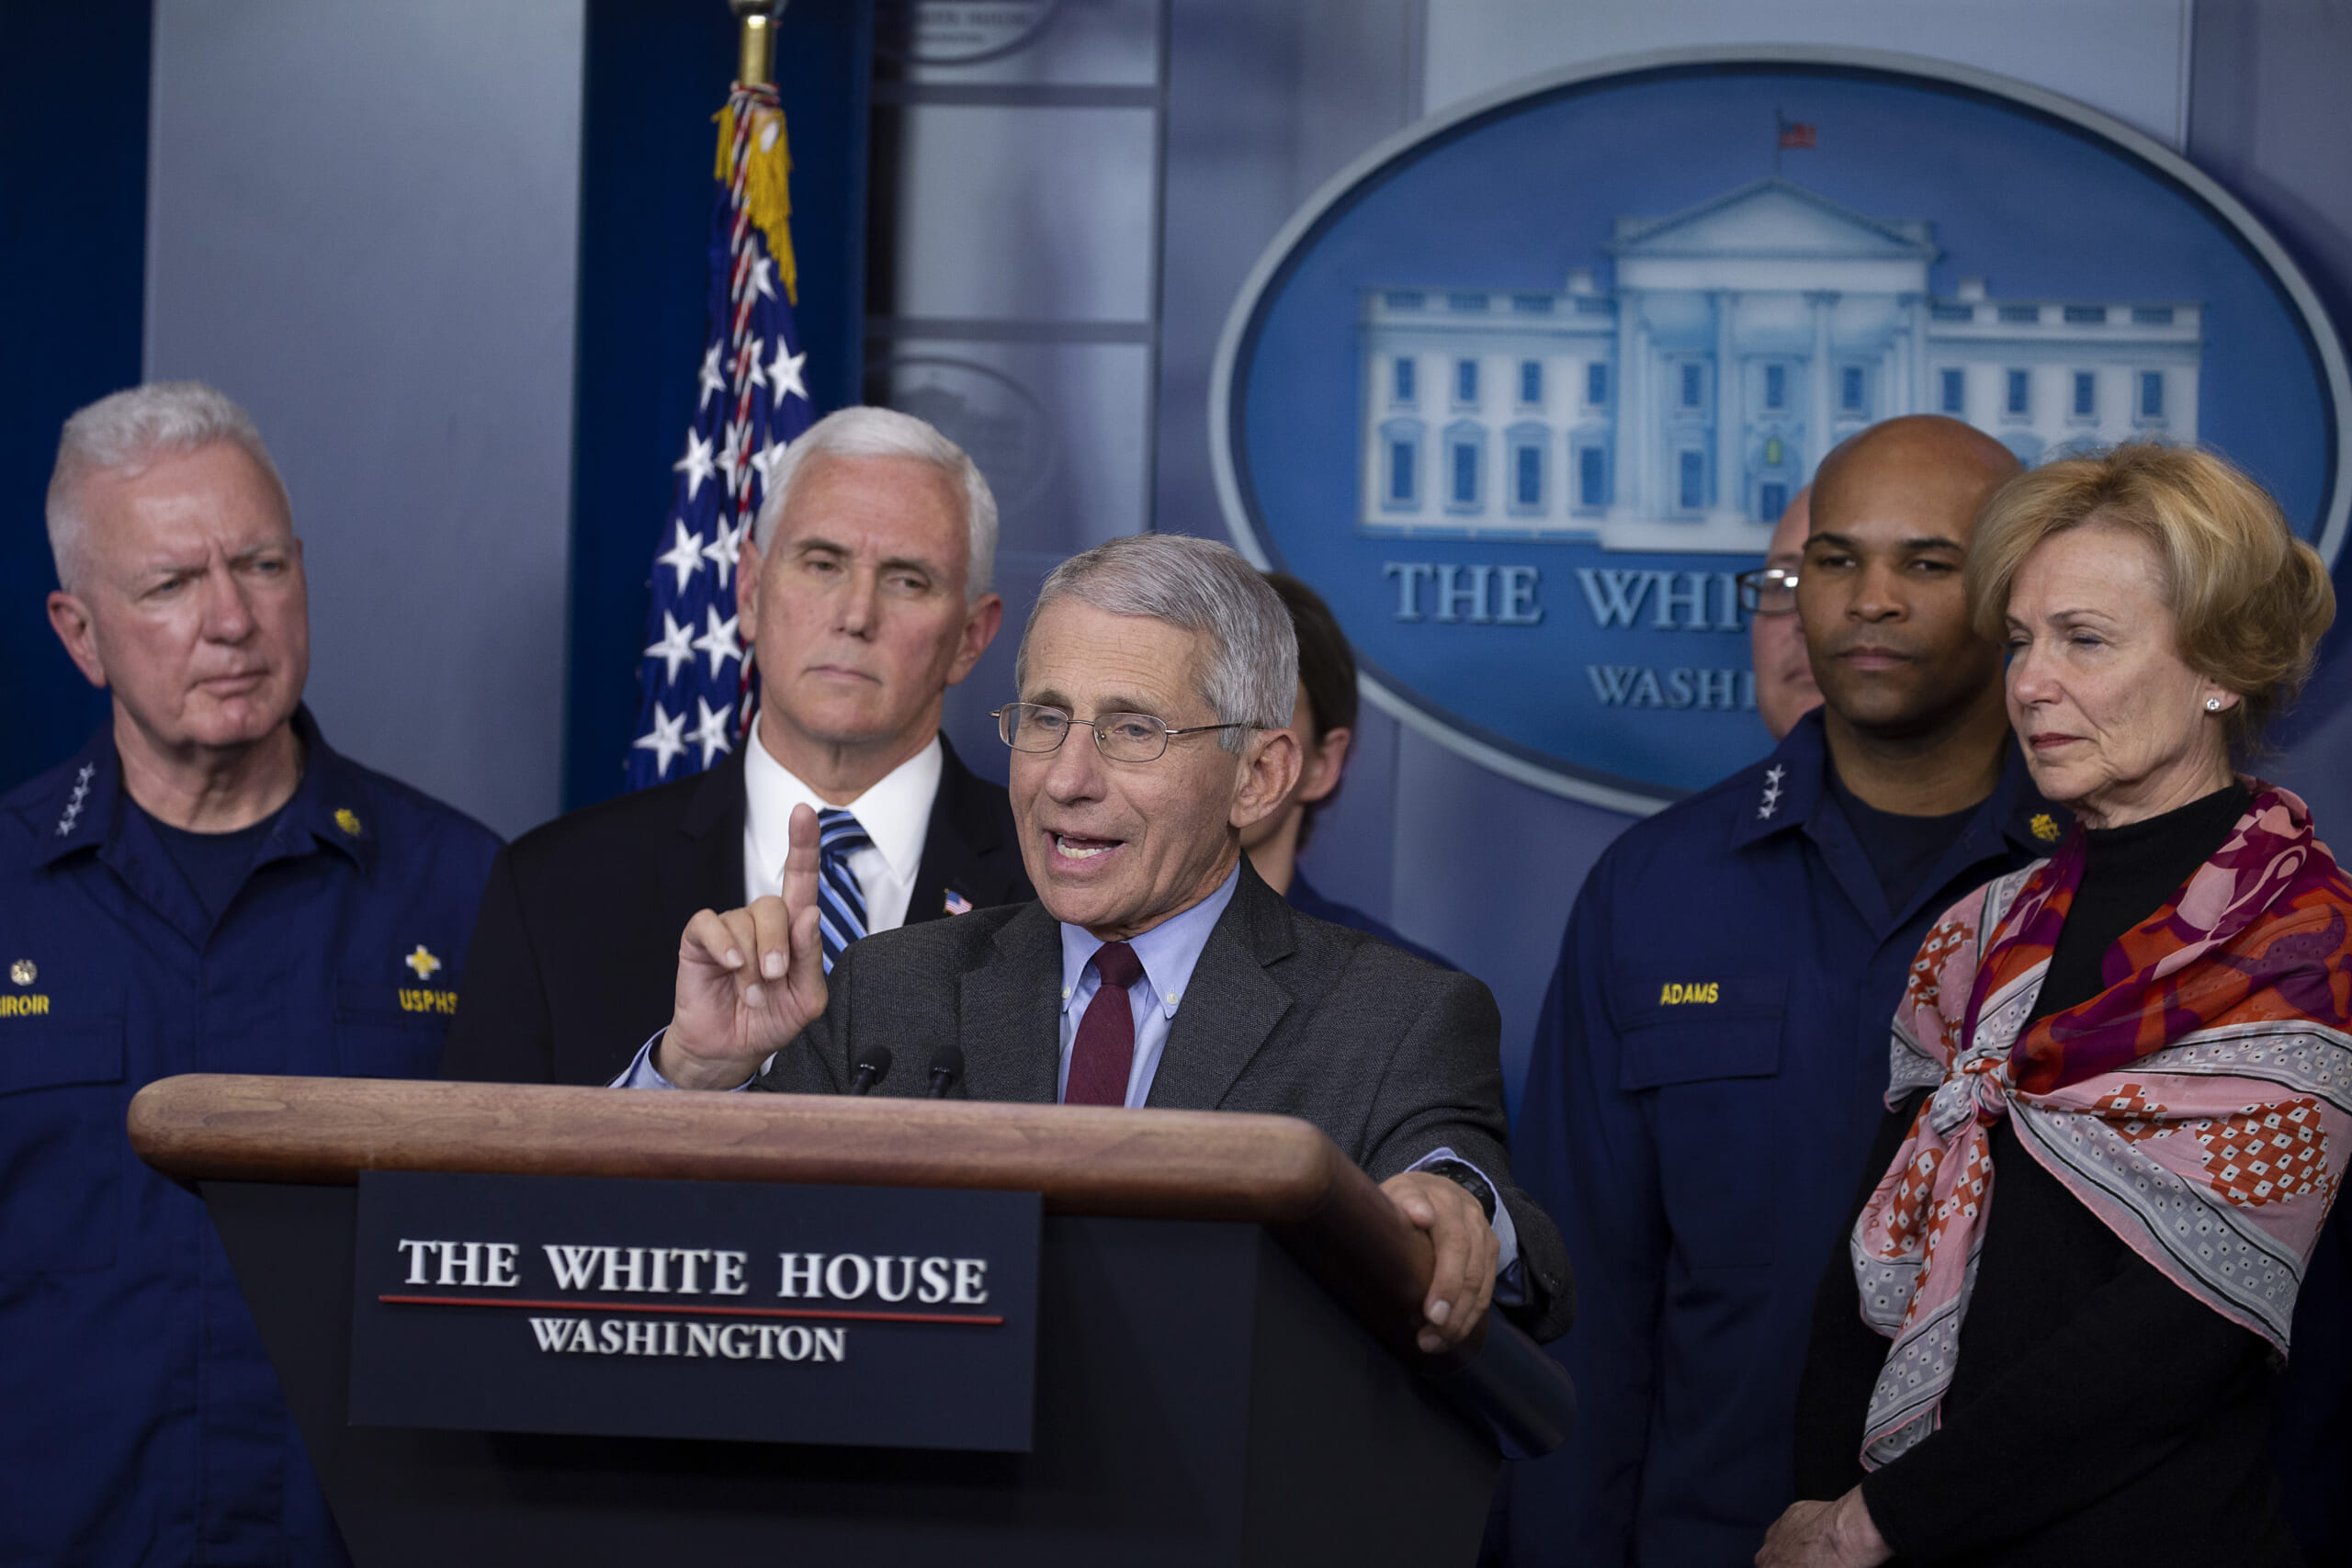 Anthony Fauci, Director of the National Institute of Allergy and Infectious Diseases, speaks to the media in the press briefing room at the White House on March 15, 2020 in Washington, DC. The United States has surpassed 3,000 confirmed cases of the coronavirus, and the death toll climbed to at least 61, with 25 of the deaths associated with the Life Care Center in Kirkland, Washington.